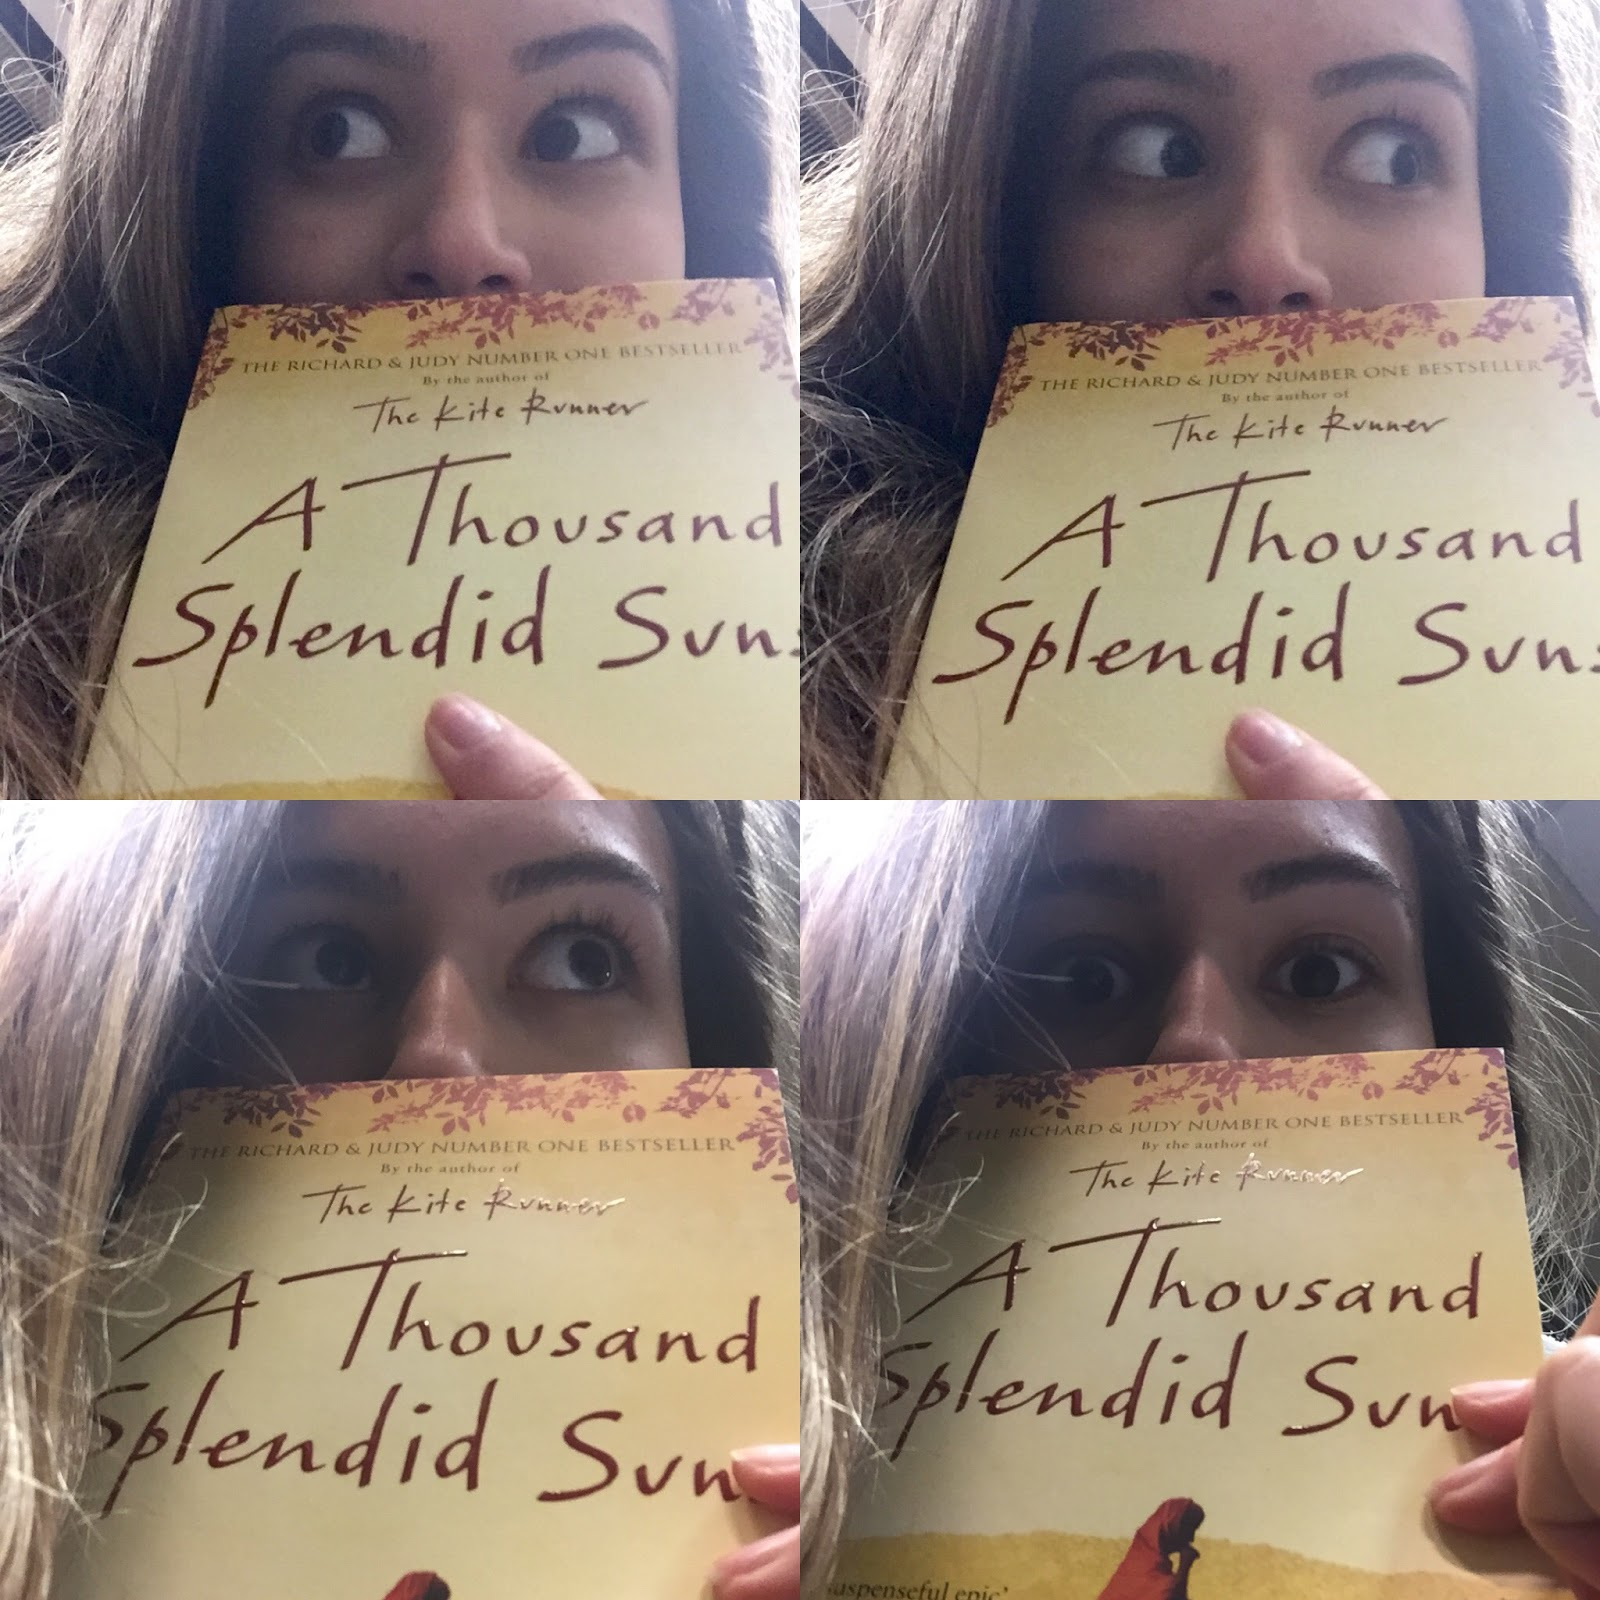 a thousand splendid suns book A thousand splendid suns has 949646 ratings and 46548 reviews lucy said:  for the last two months i have been putting off reading this book for starte.